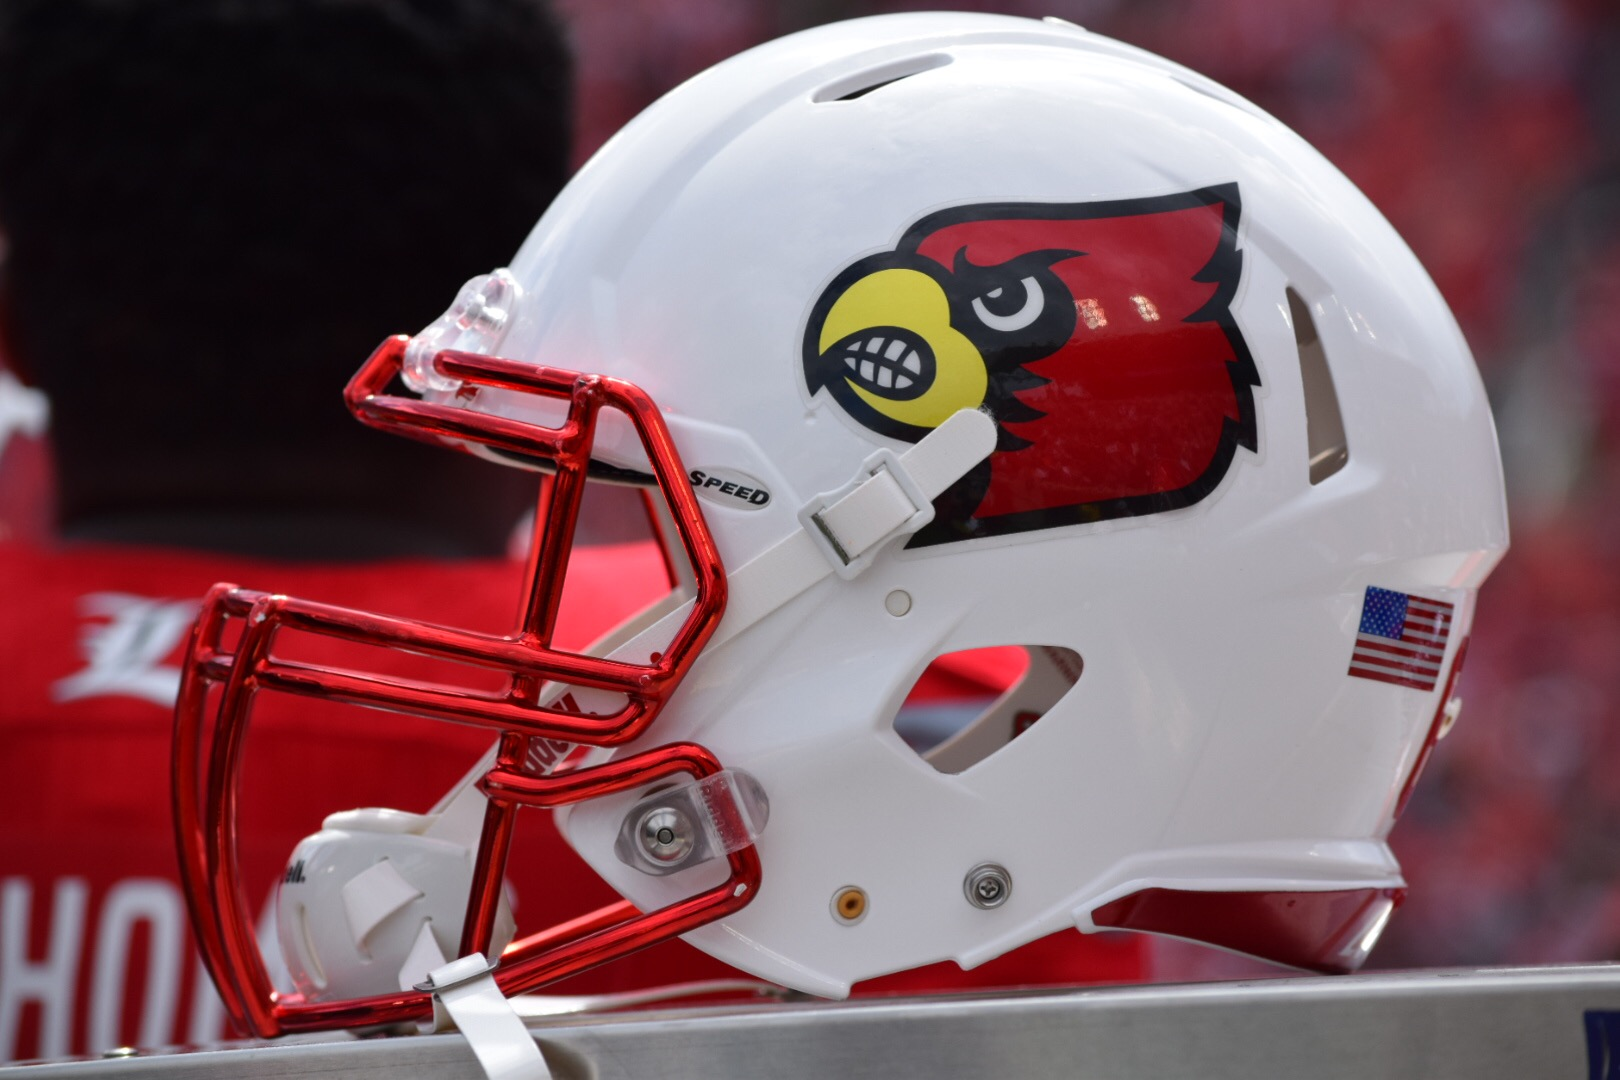 Helmet. Louisville vs. Houston Photo by Seth Bloom 9-12-2015.